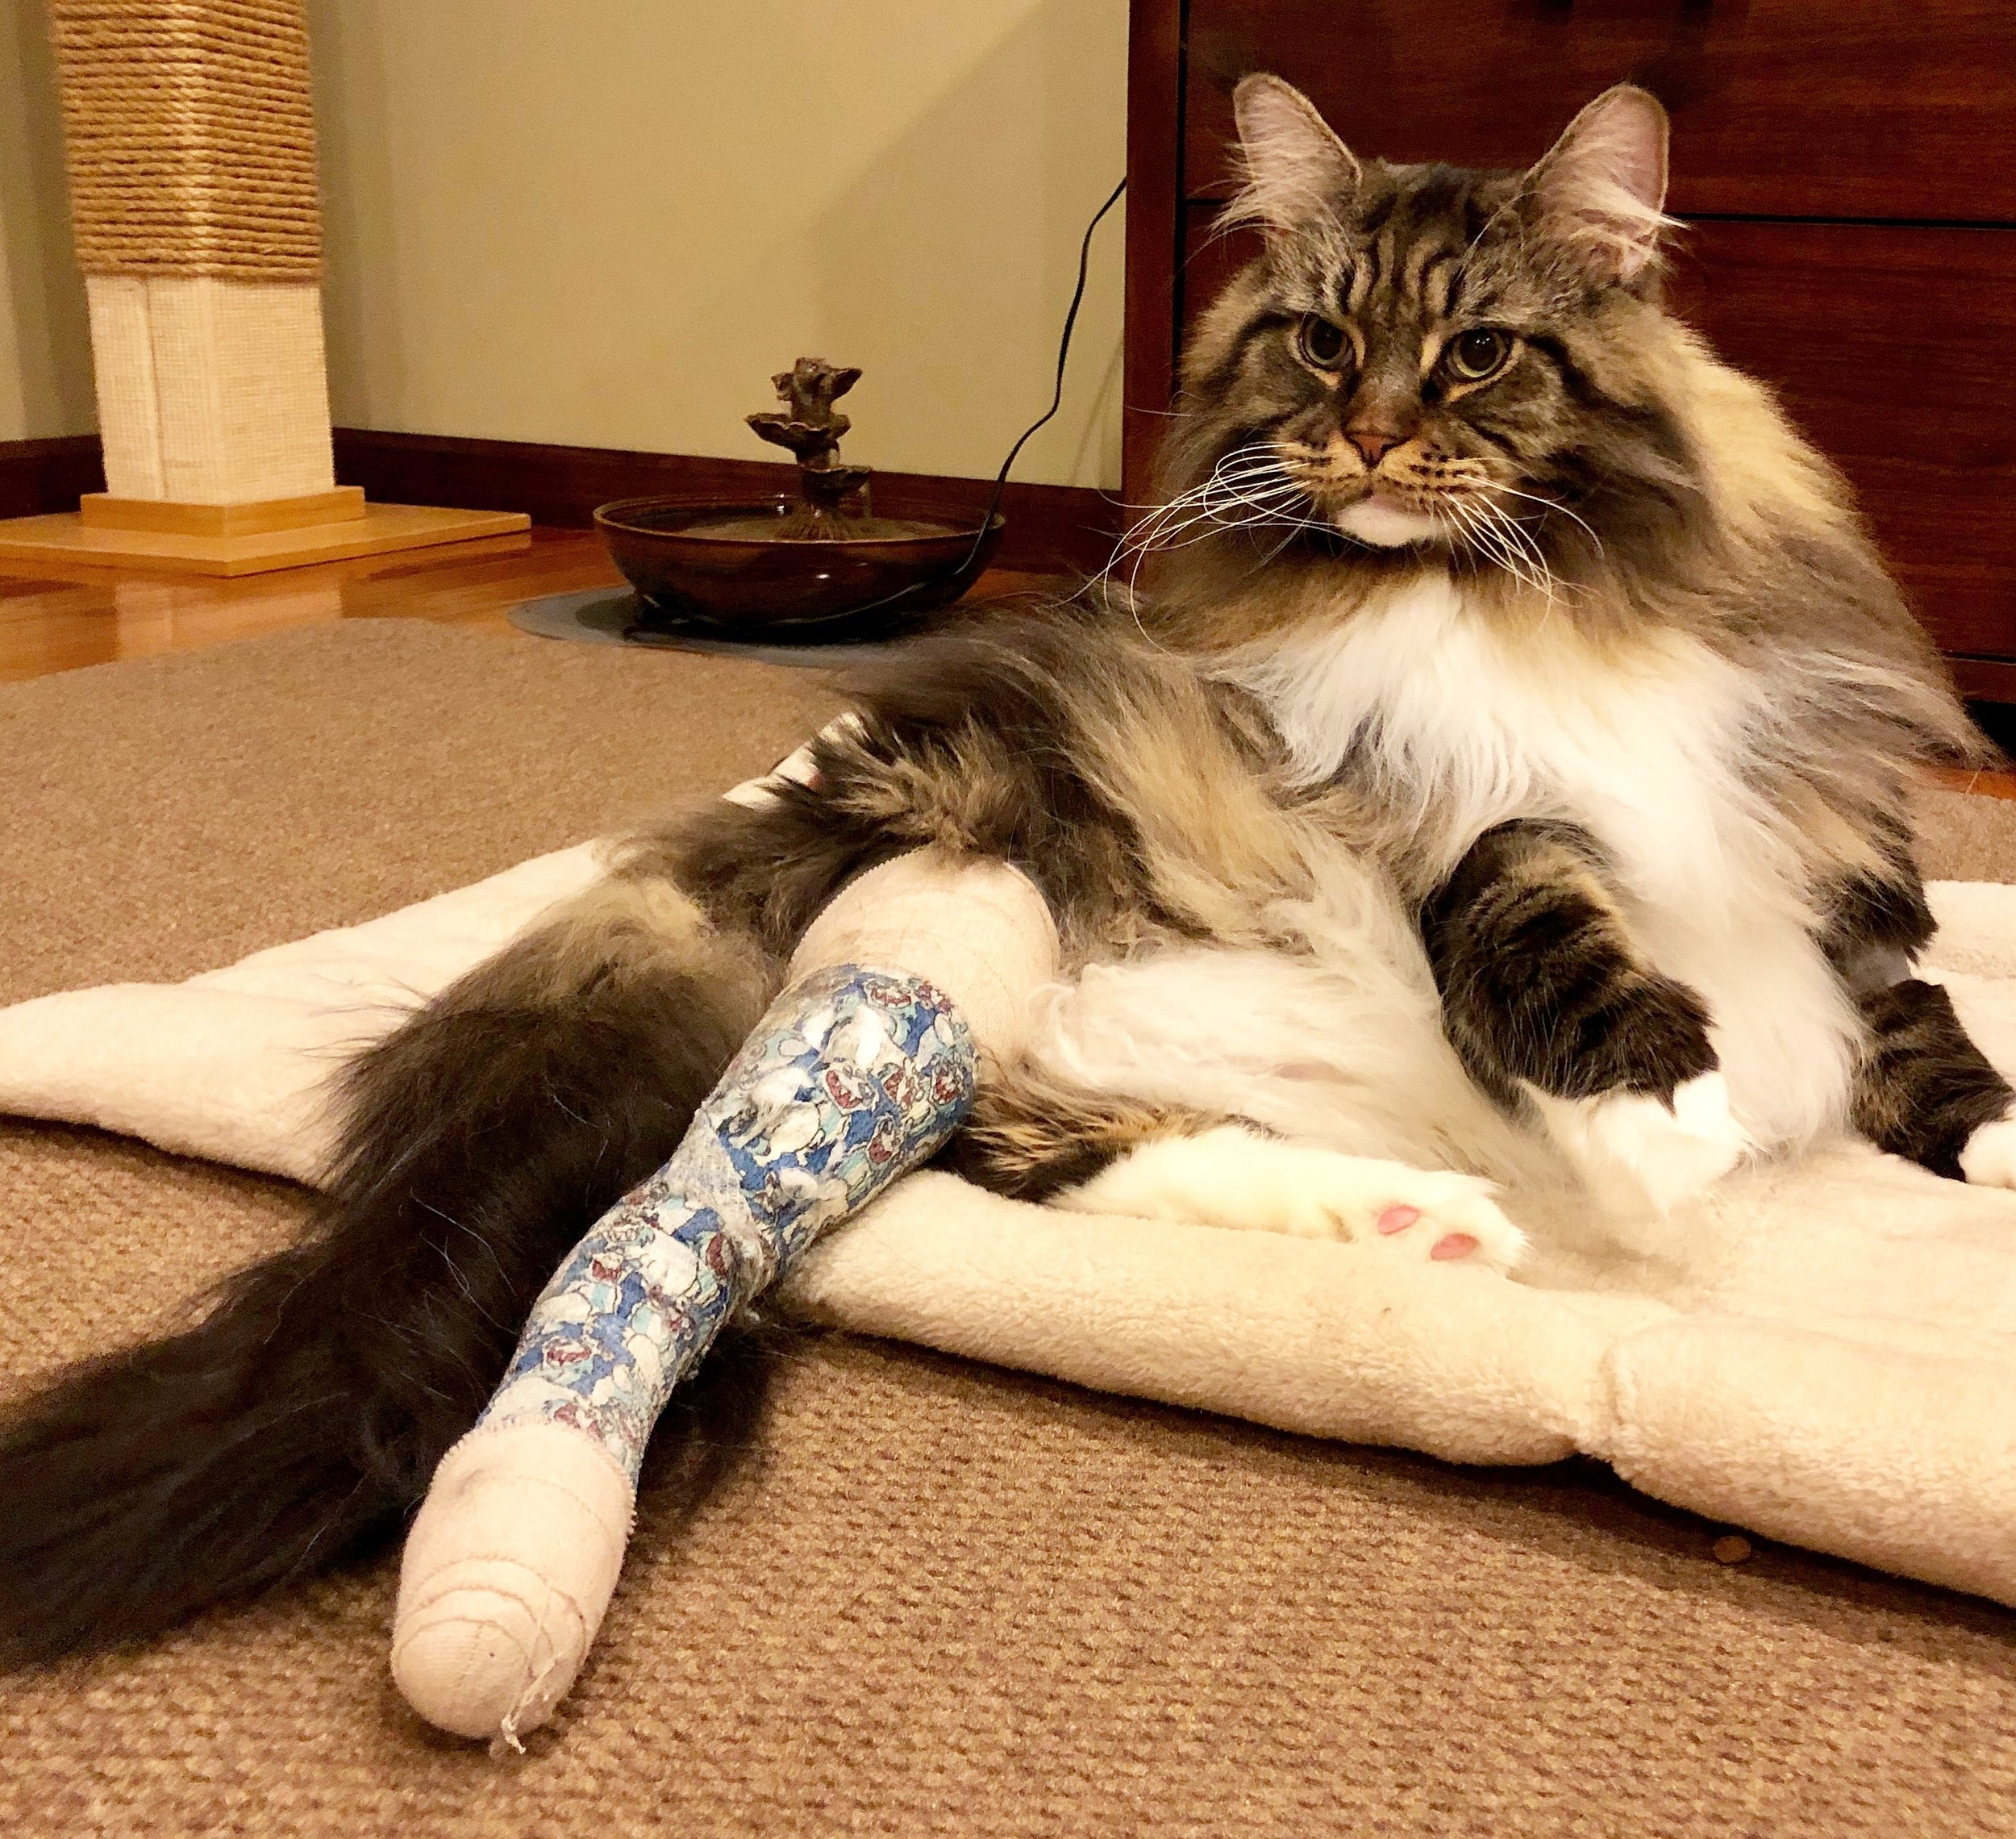 Rio recovering after surgery, December 1, 2018